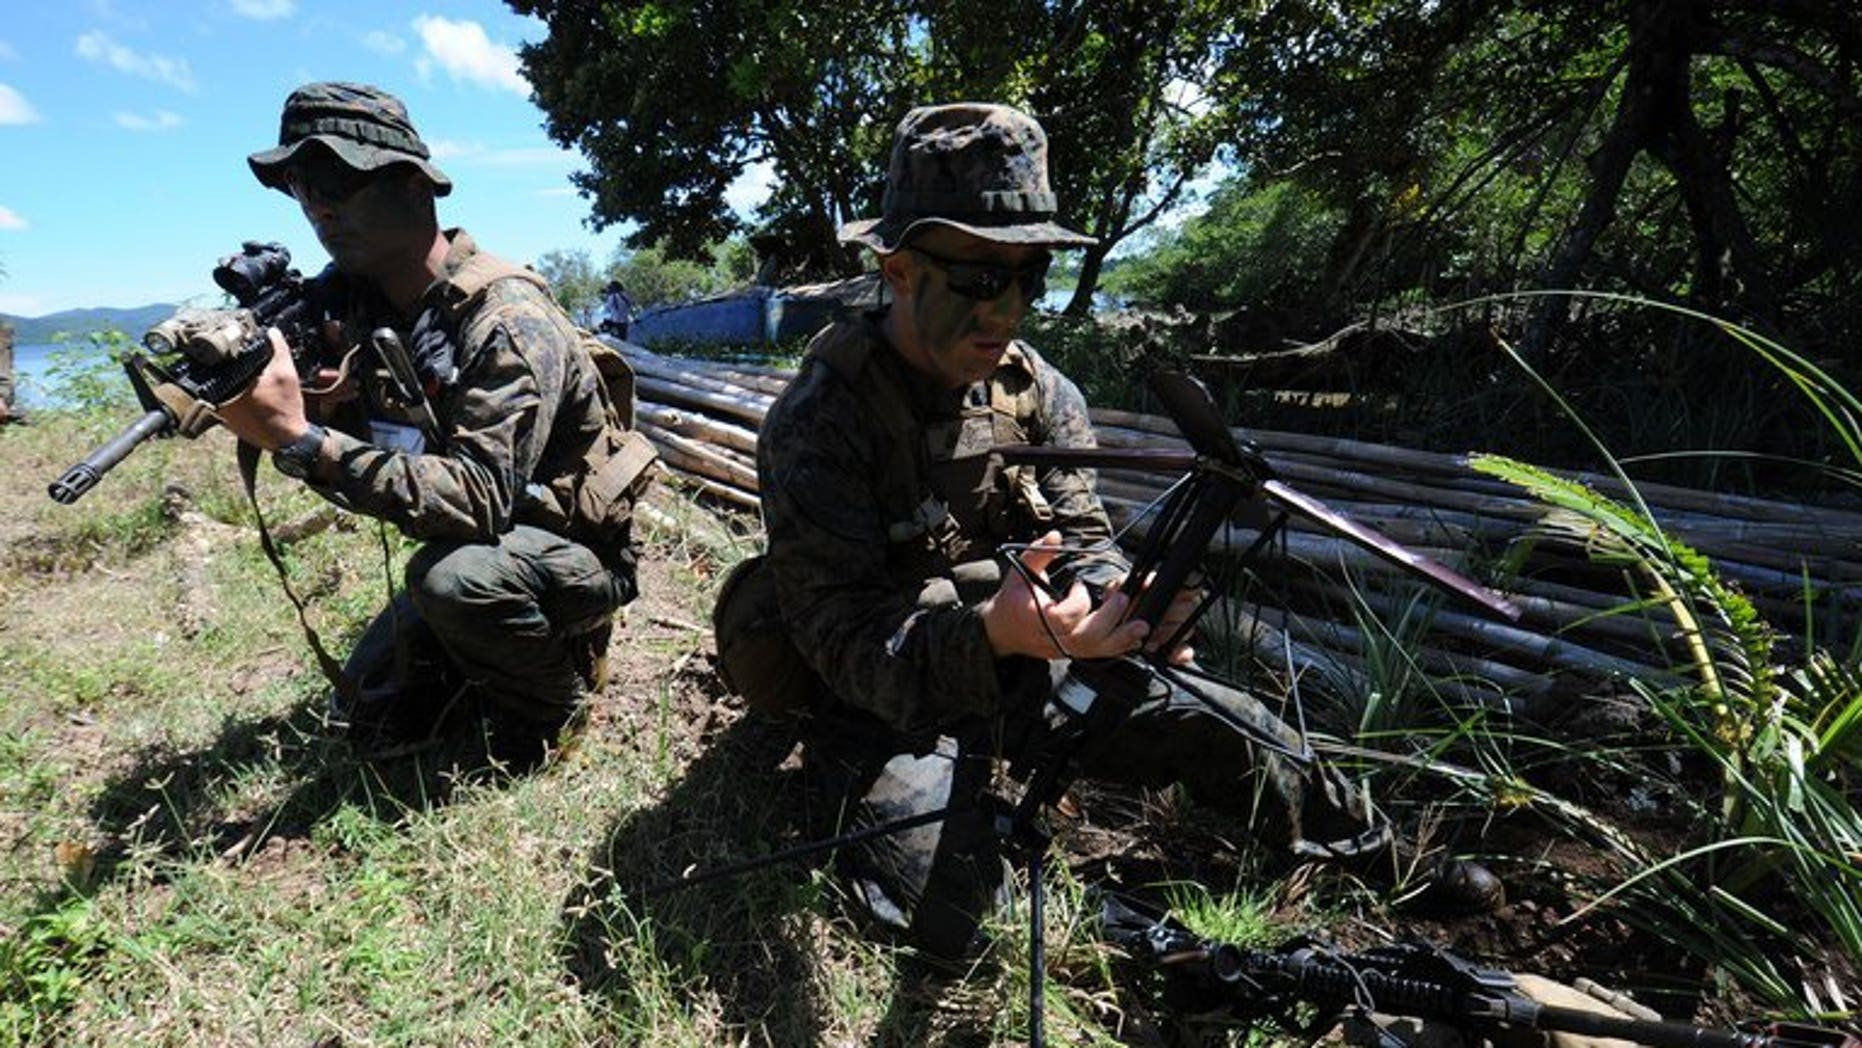 US soldiers prepare communication equipment during a joint exercise on the shore of Ulugan Bay, on Palawan island, on April 25, 2012. The Philippines and the United States have begun talks aimed at allowing a bigger US military presence on the soil of its key Asian ally, amid tensions with China.